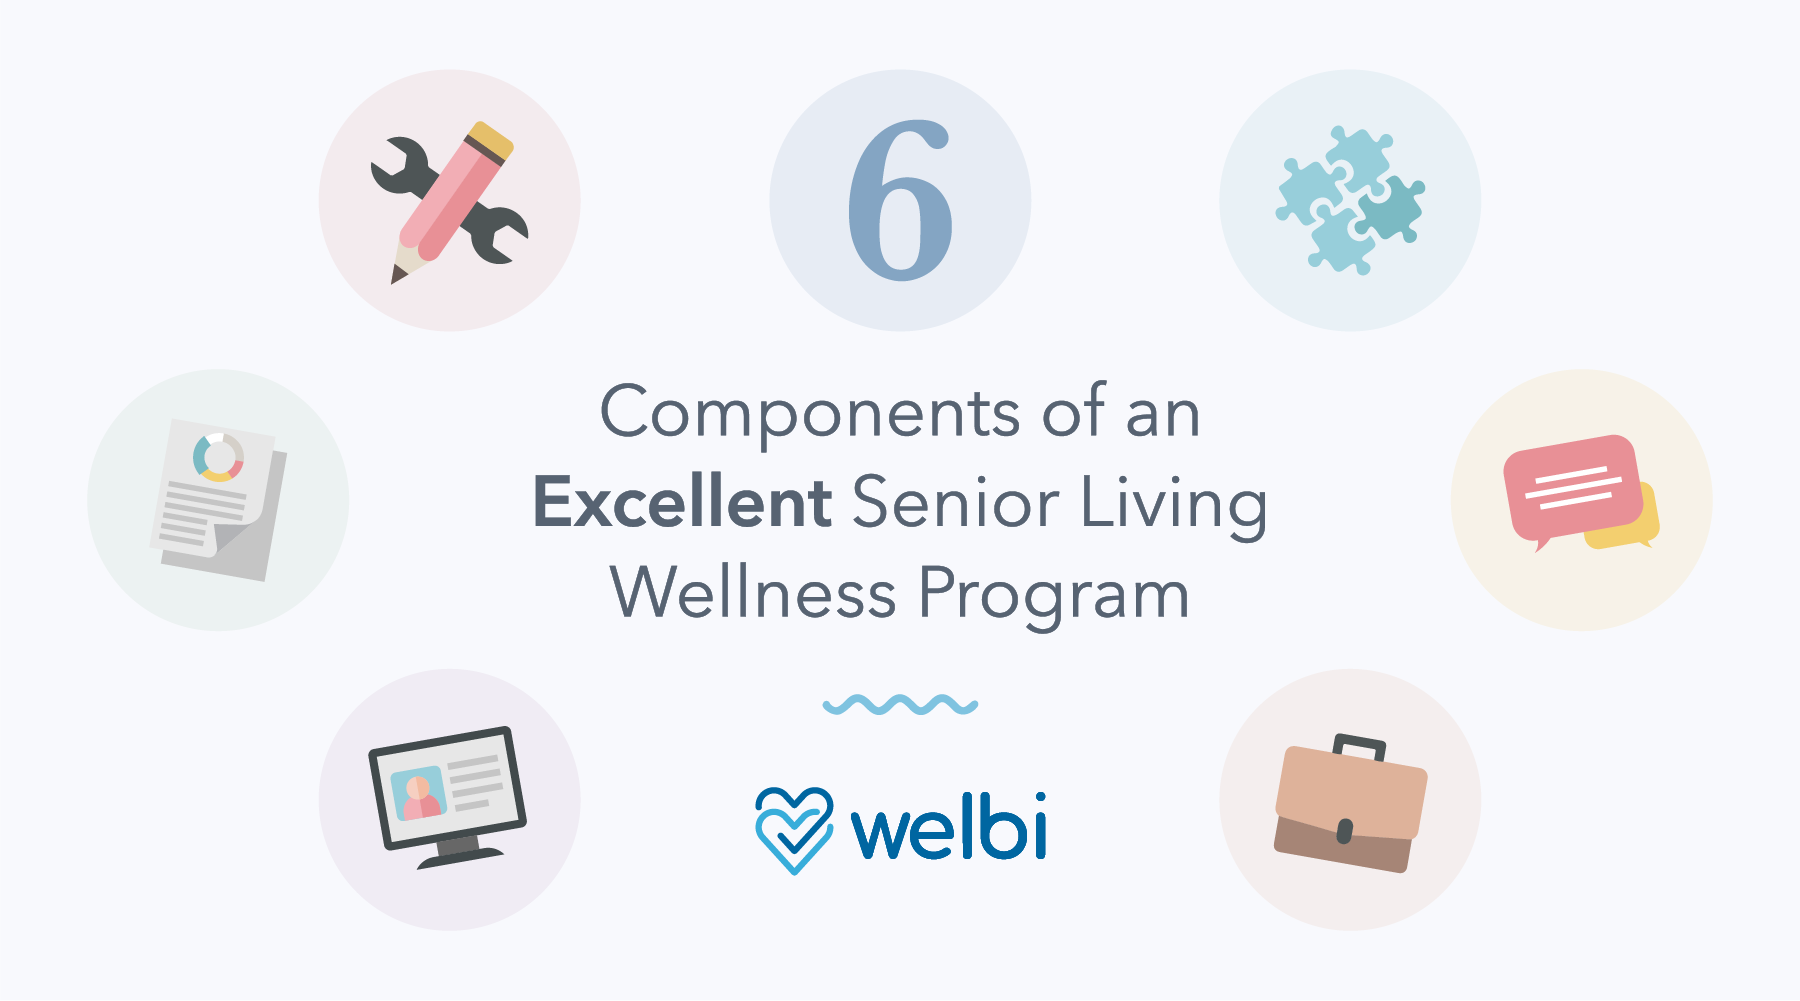 The Six Components of an Excellent Senior Living Wellness Program